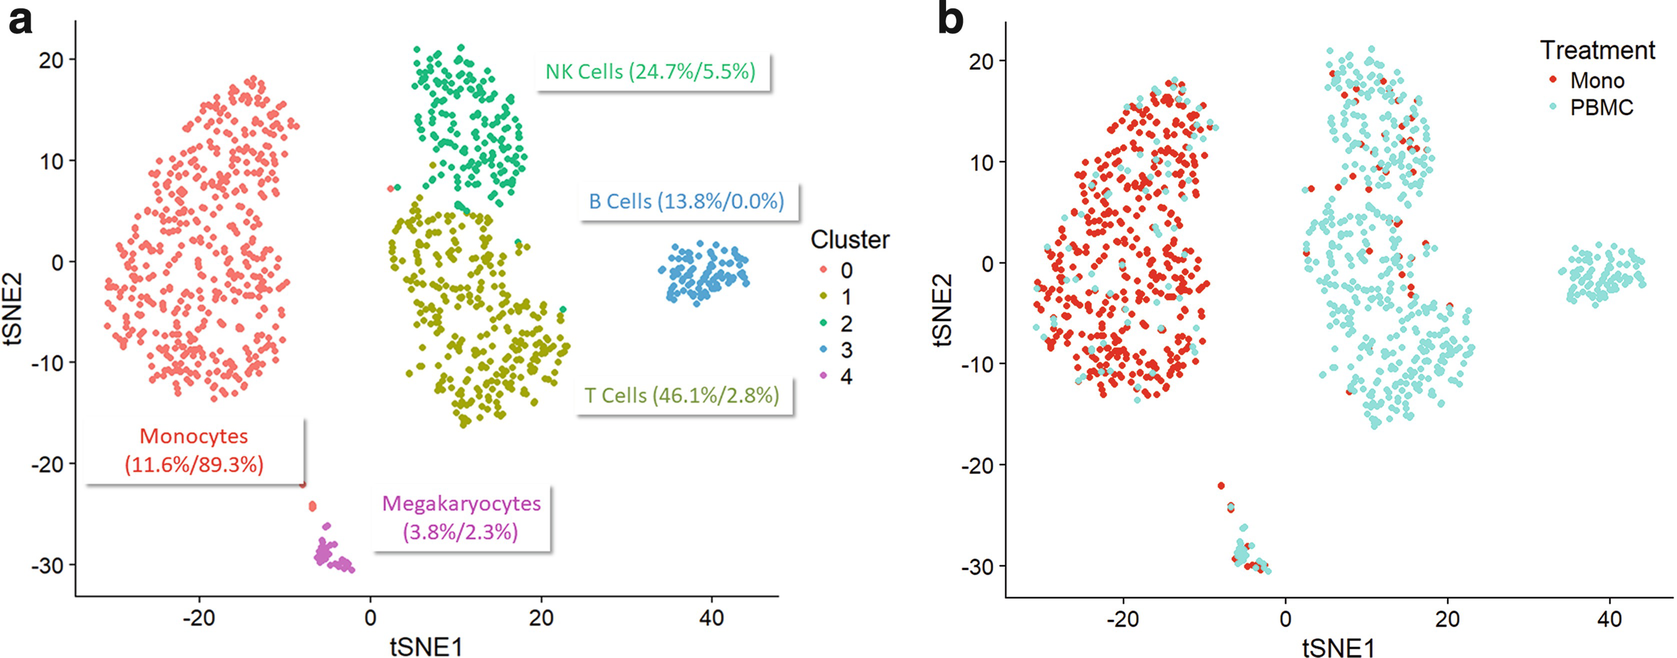 Single-Cell RNA-Sequencing of Peripheral Blood Mononuclear